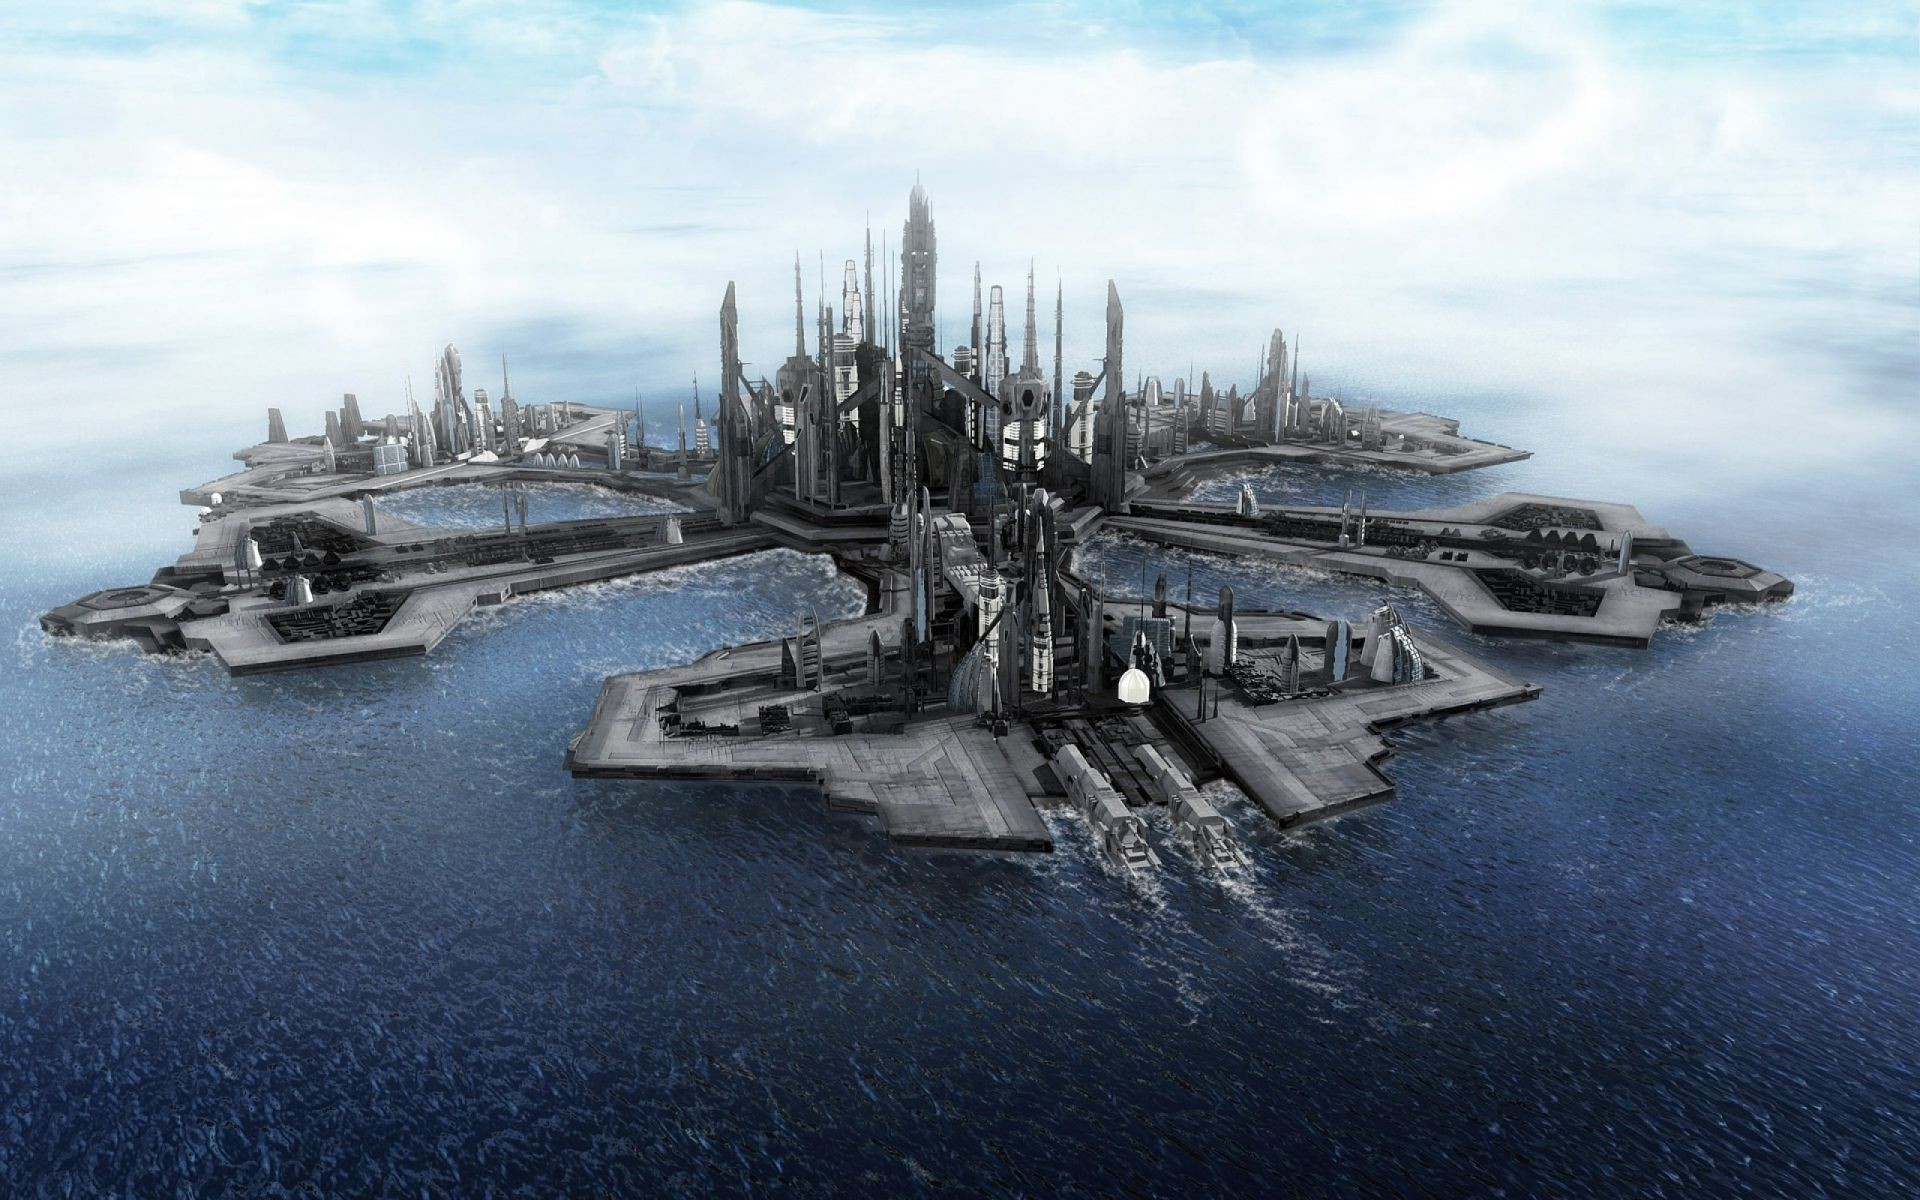 Fantasy water watercraft ship vehicle transportation system sea harbor pier  HD wallpaper. iPhone wallpapers for free.